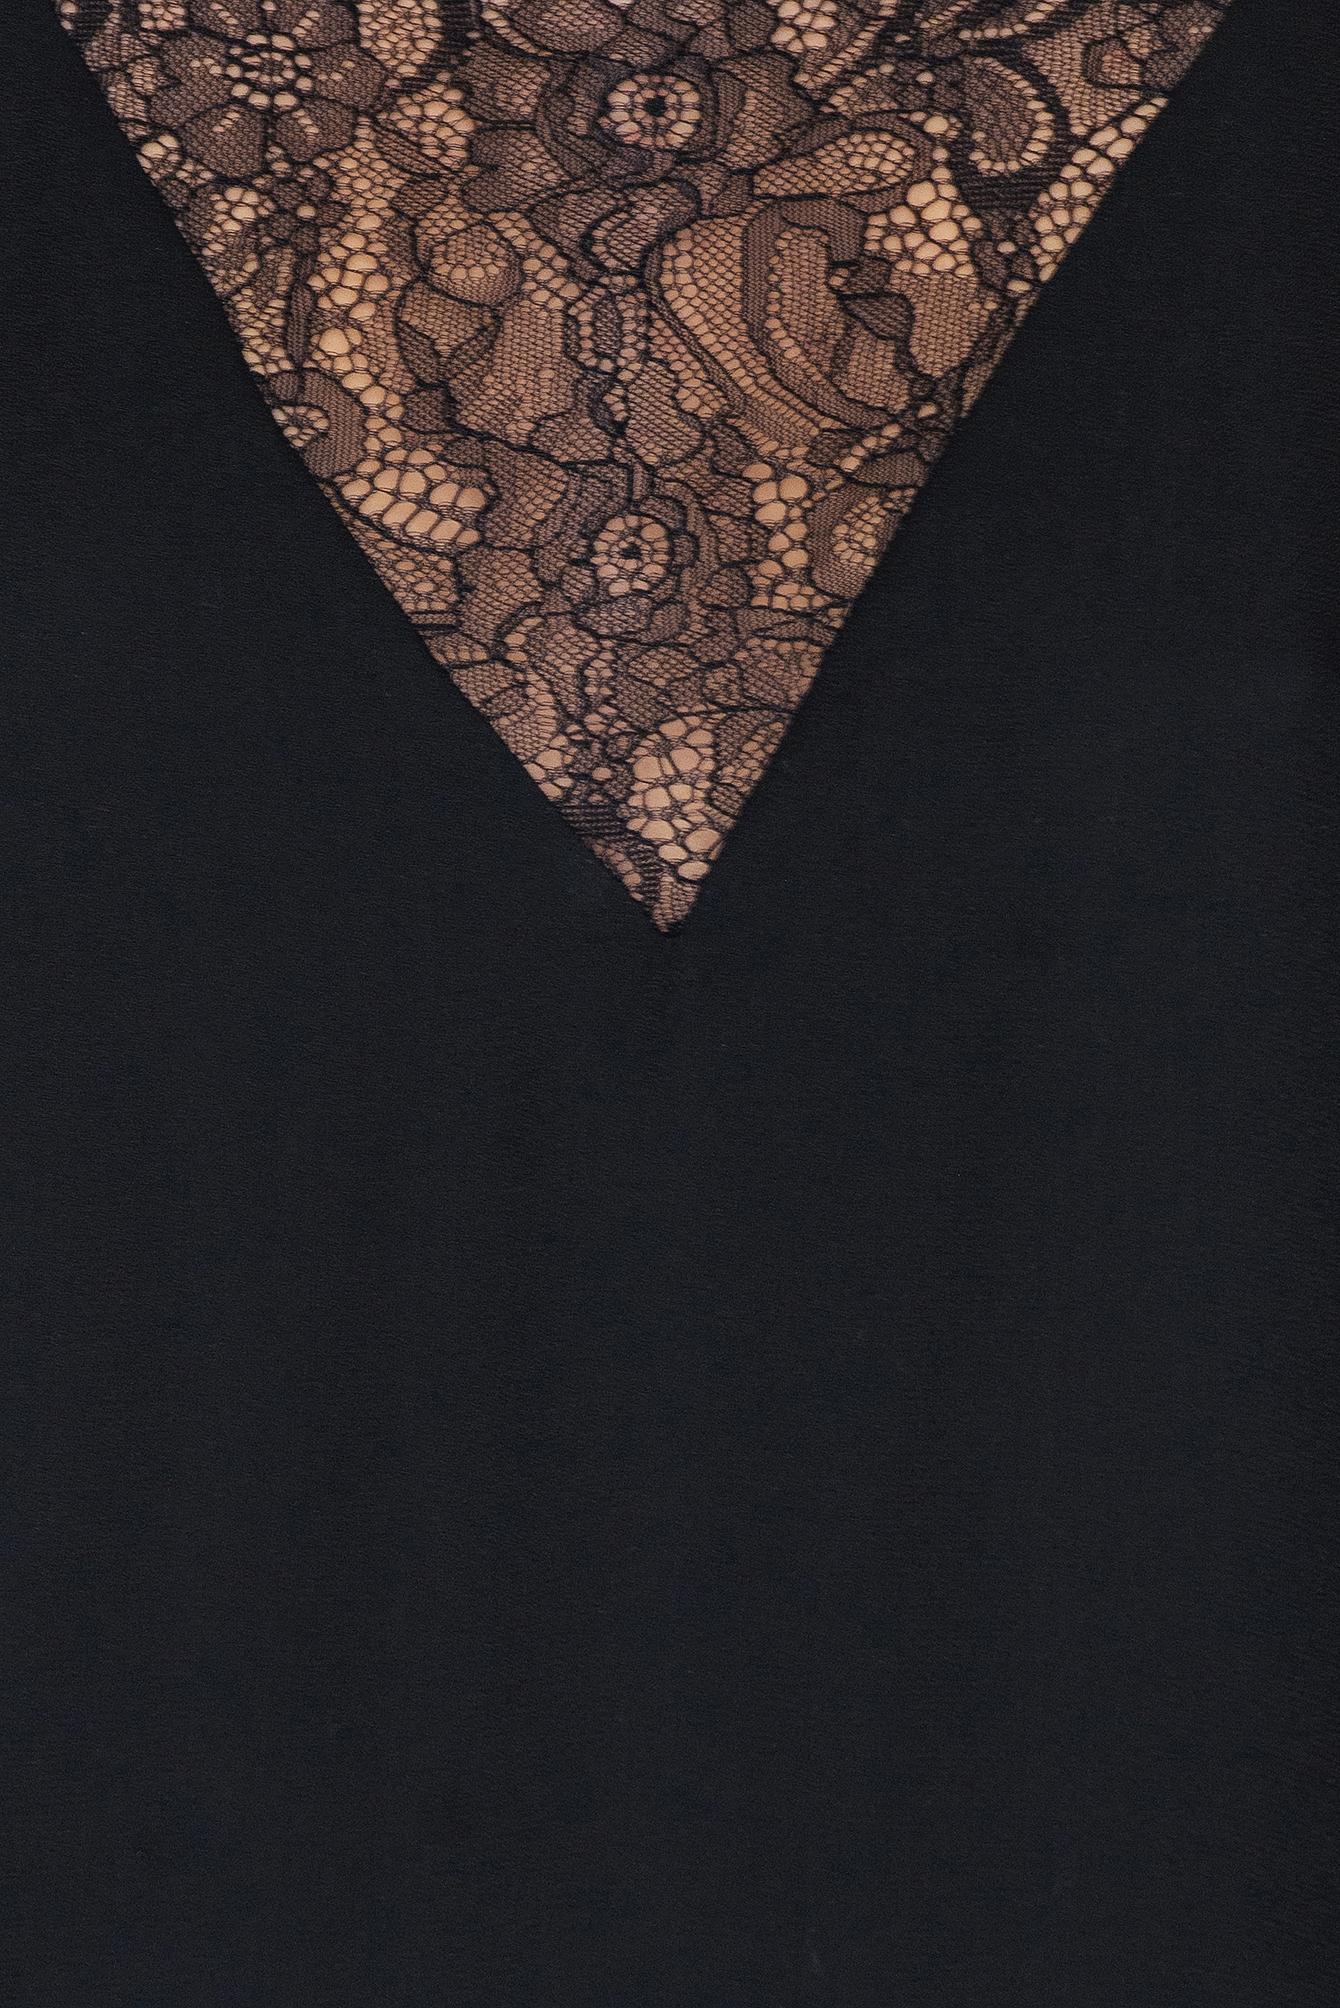 Black Biaf Lace Top